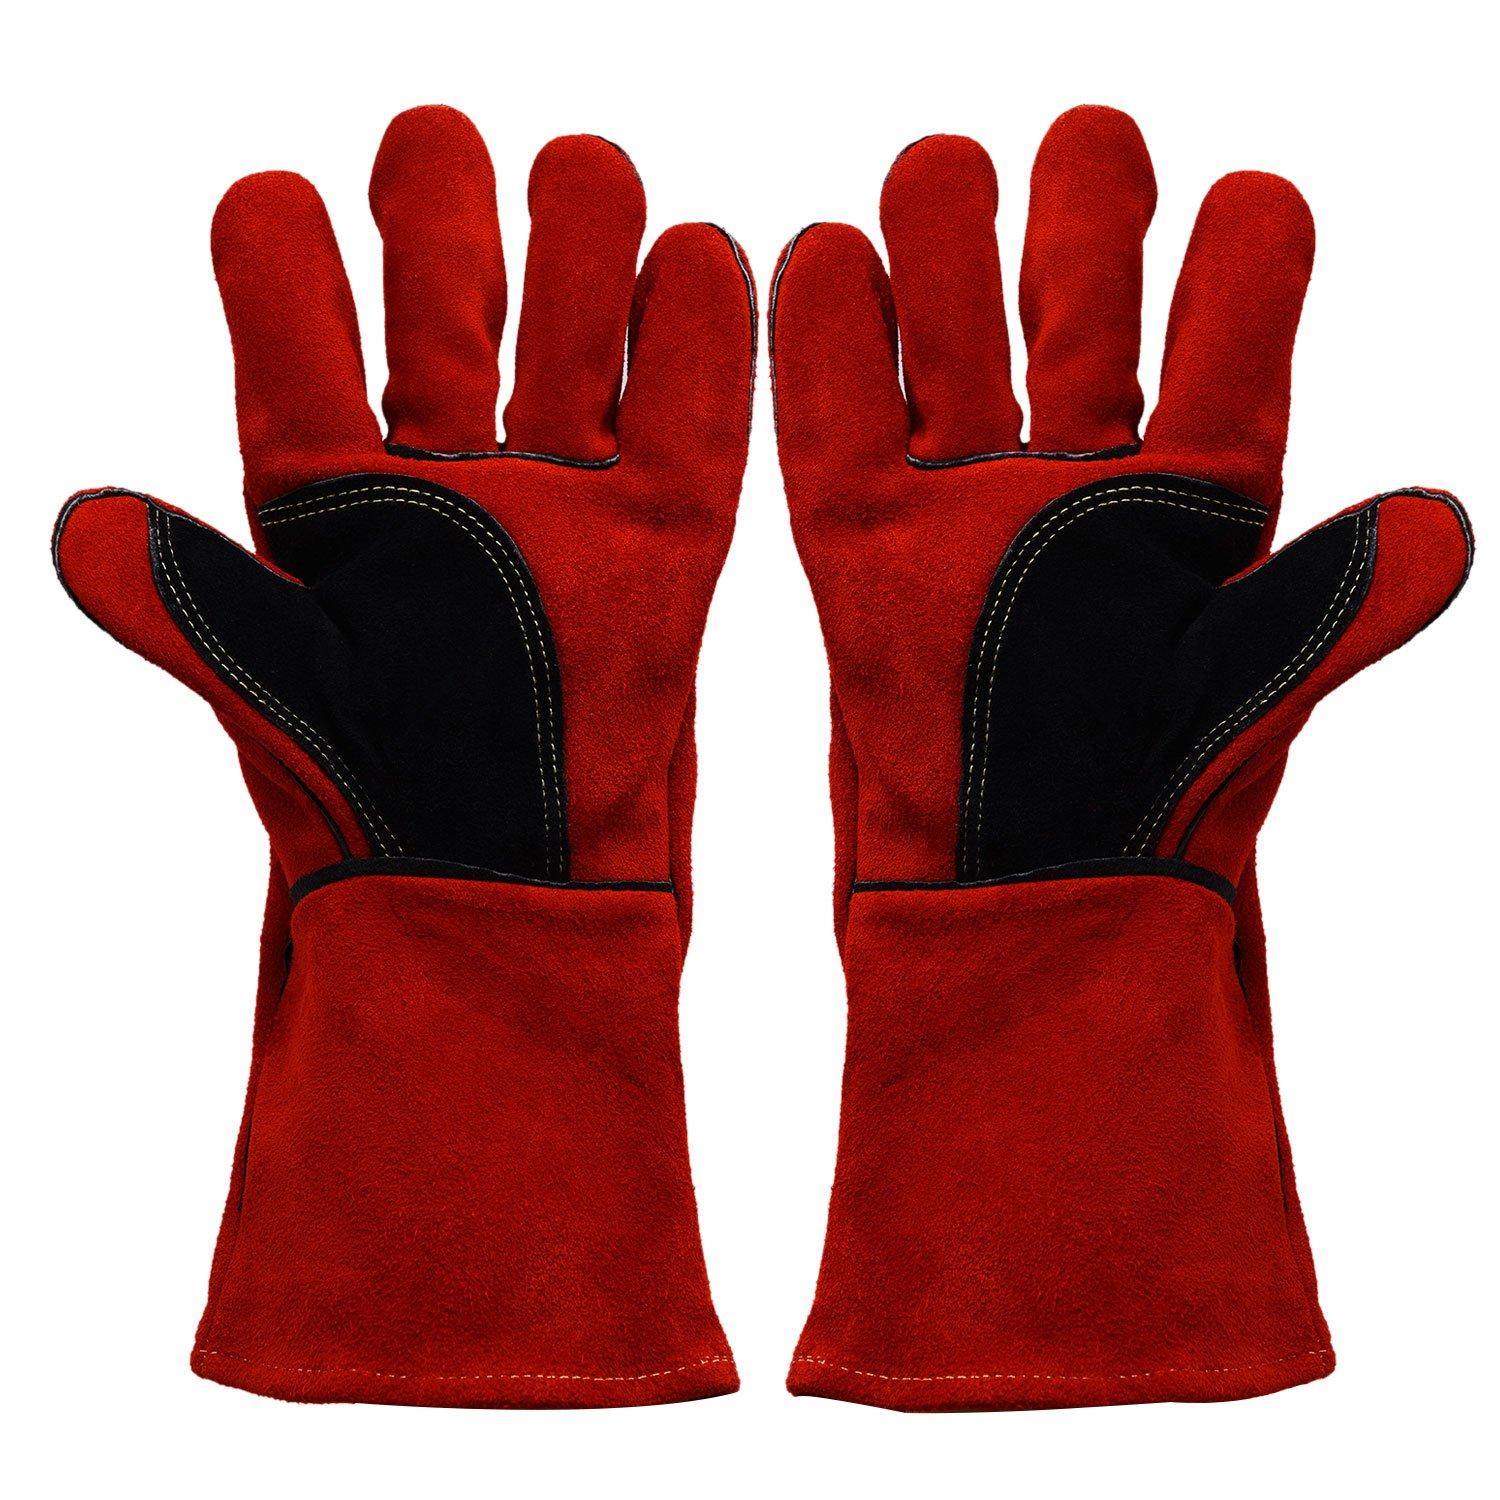 BHIVES Heavy Duty Heat and Fire Resistant Gloves Perfect for Gardening/Oven/Grill/Mig/Fireplace/Stove/Pot Holder/ Tig Welder/Animal Handling/BBQ,14 Inch Long(Red)